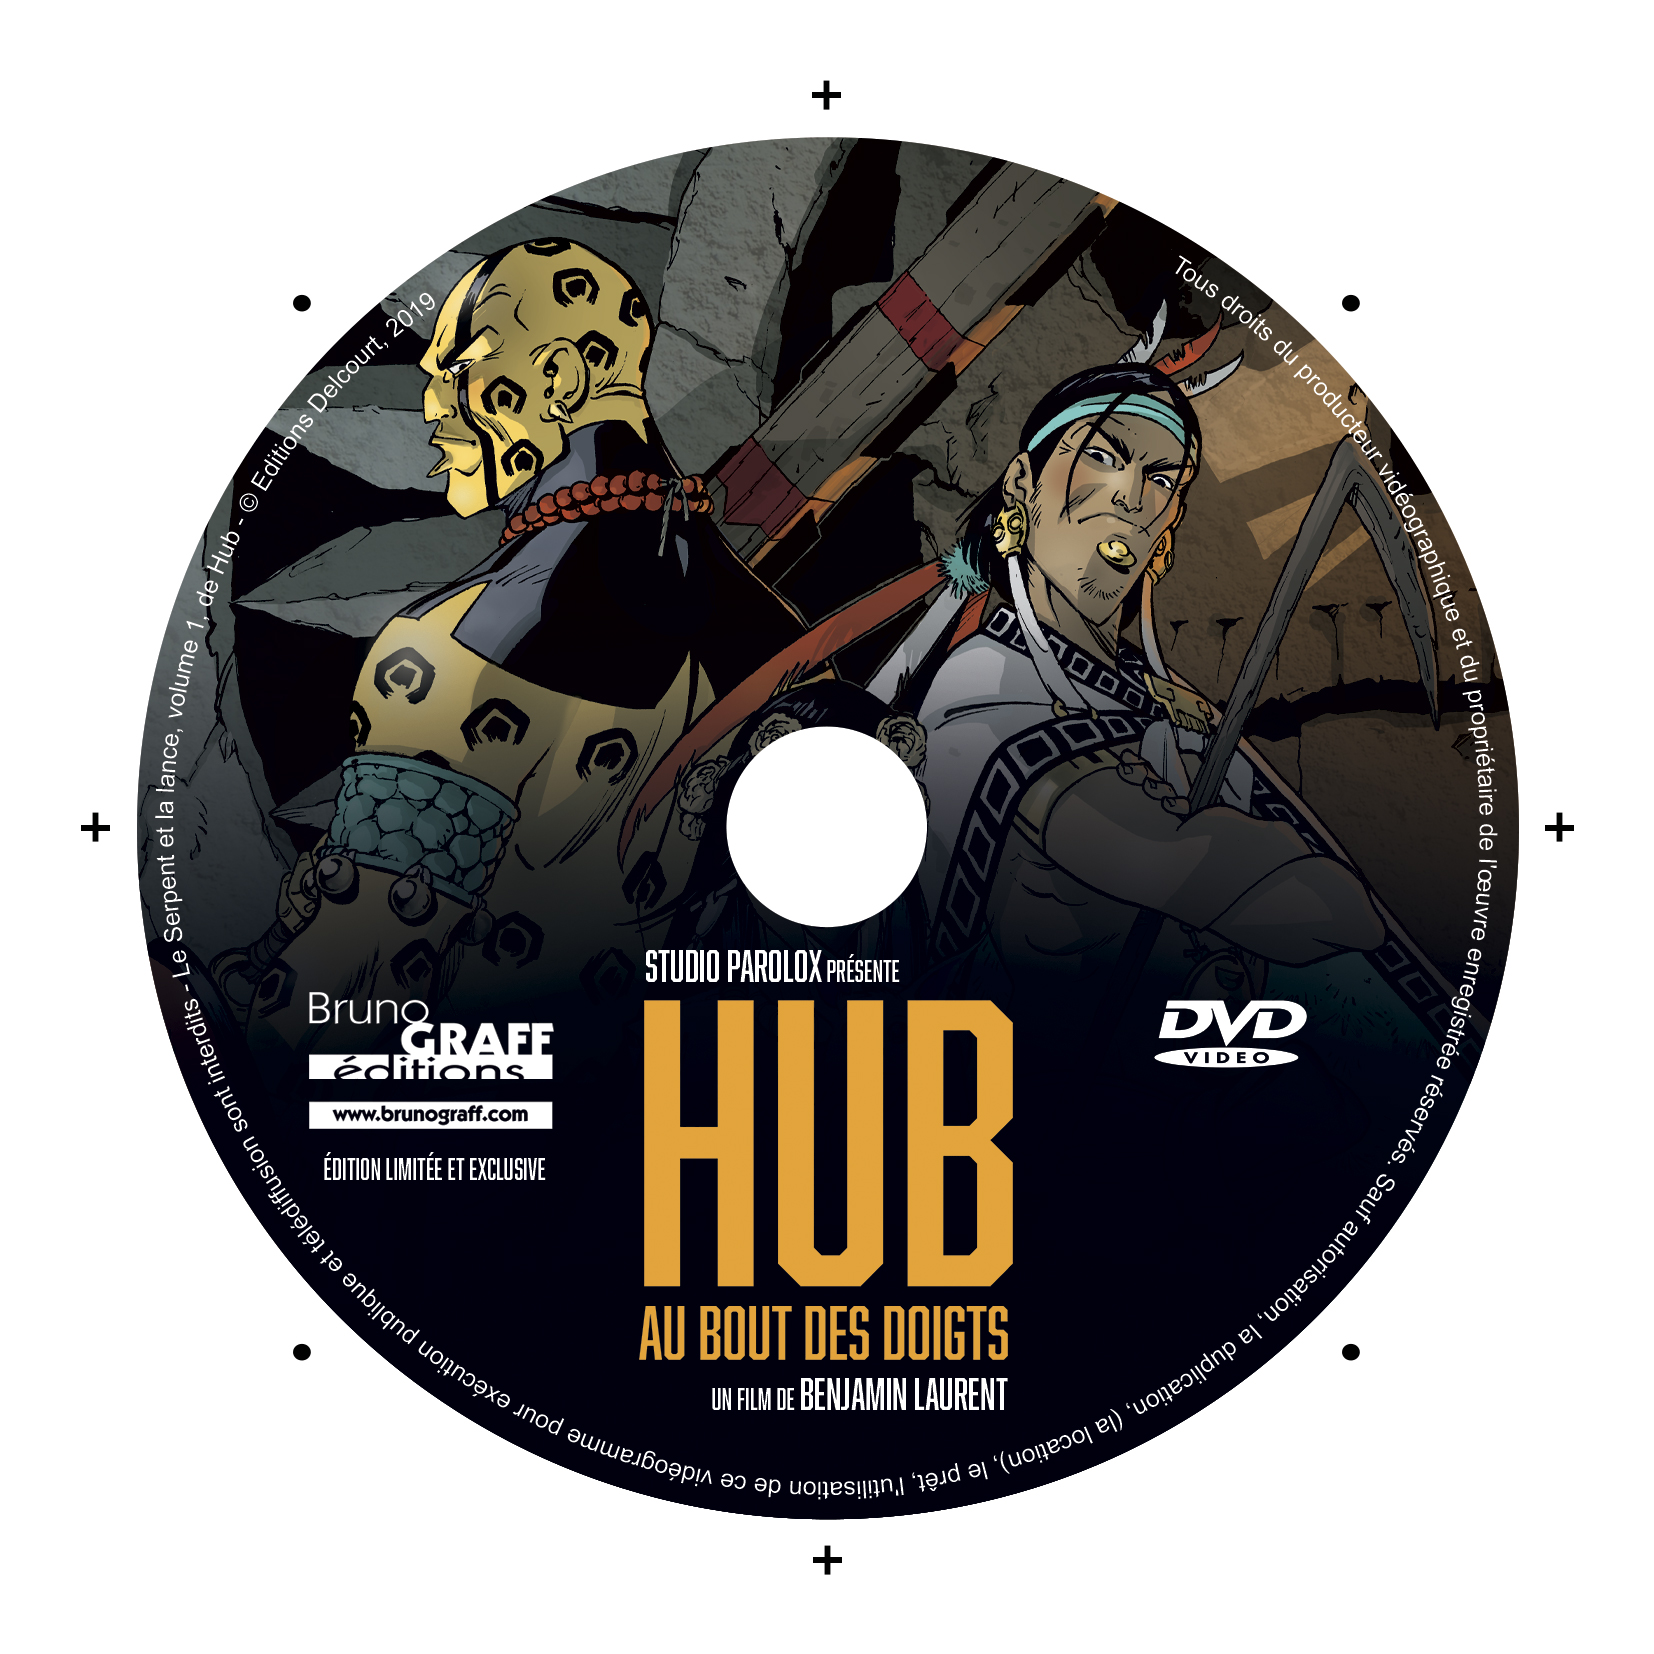 DVD HUB edition Bruno Graff